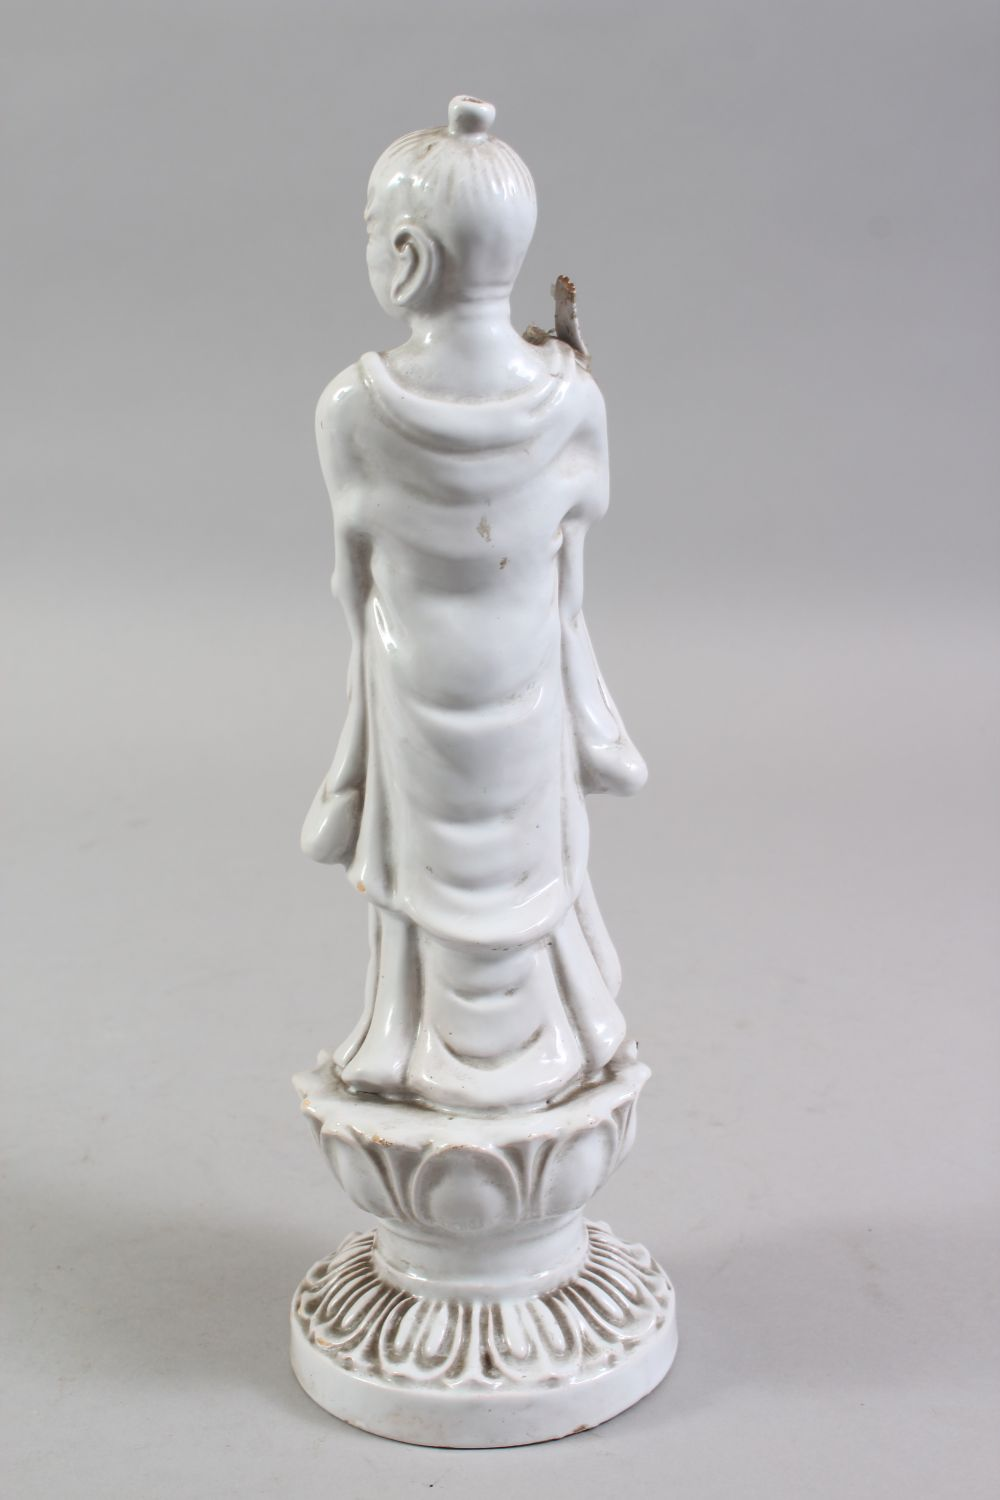 A CHINESE BLANC DE CHINE PORCELAIN FIGURE OF A BOY, standing holding a scepter, on a lotus base, - Image 3 of 6